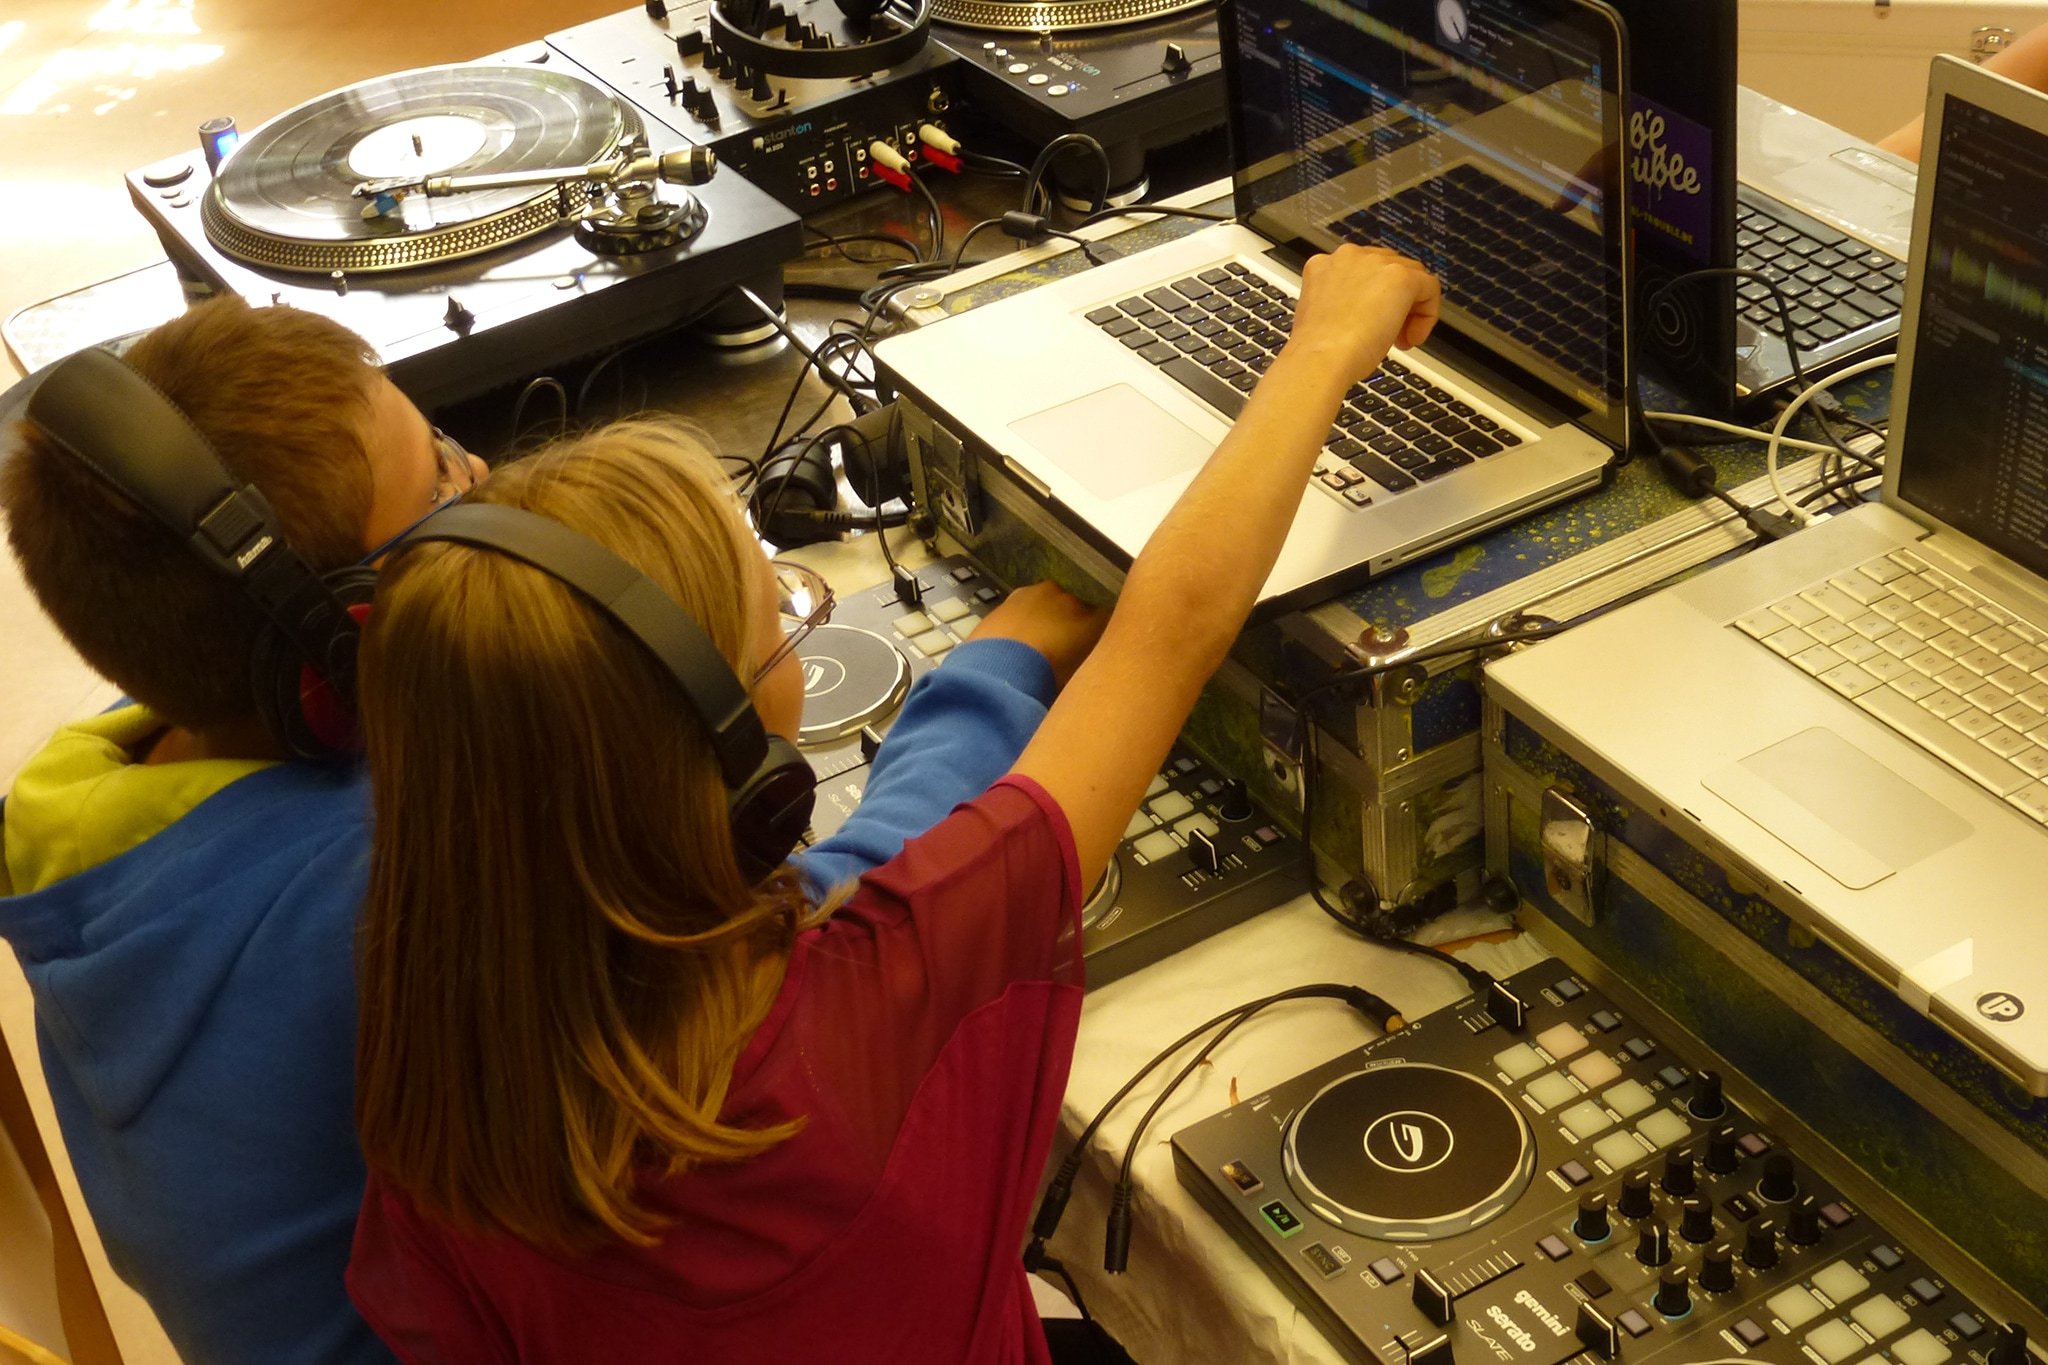 jugendkulturjahr-2020-ratingen-jkj2020-manege-dj-workshop